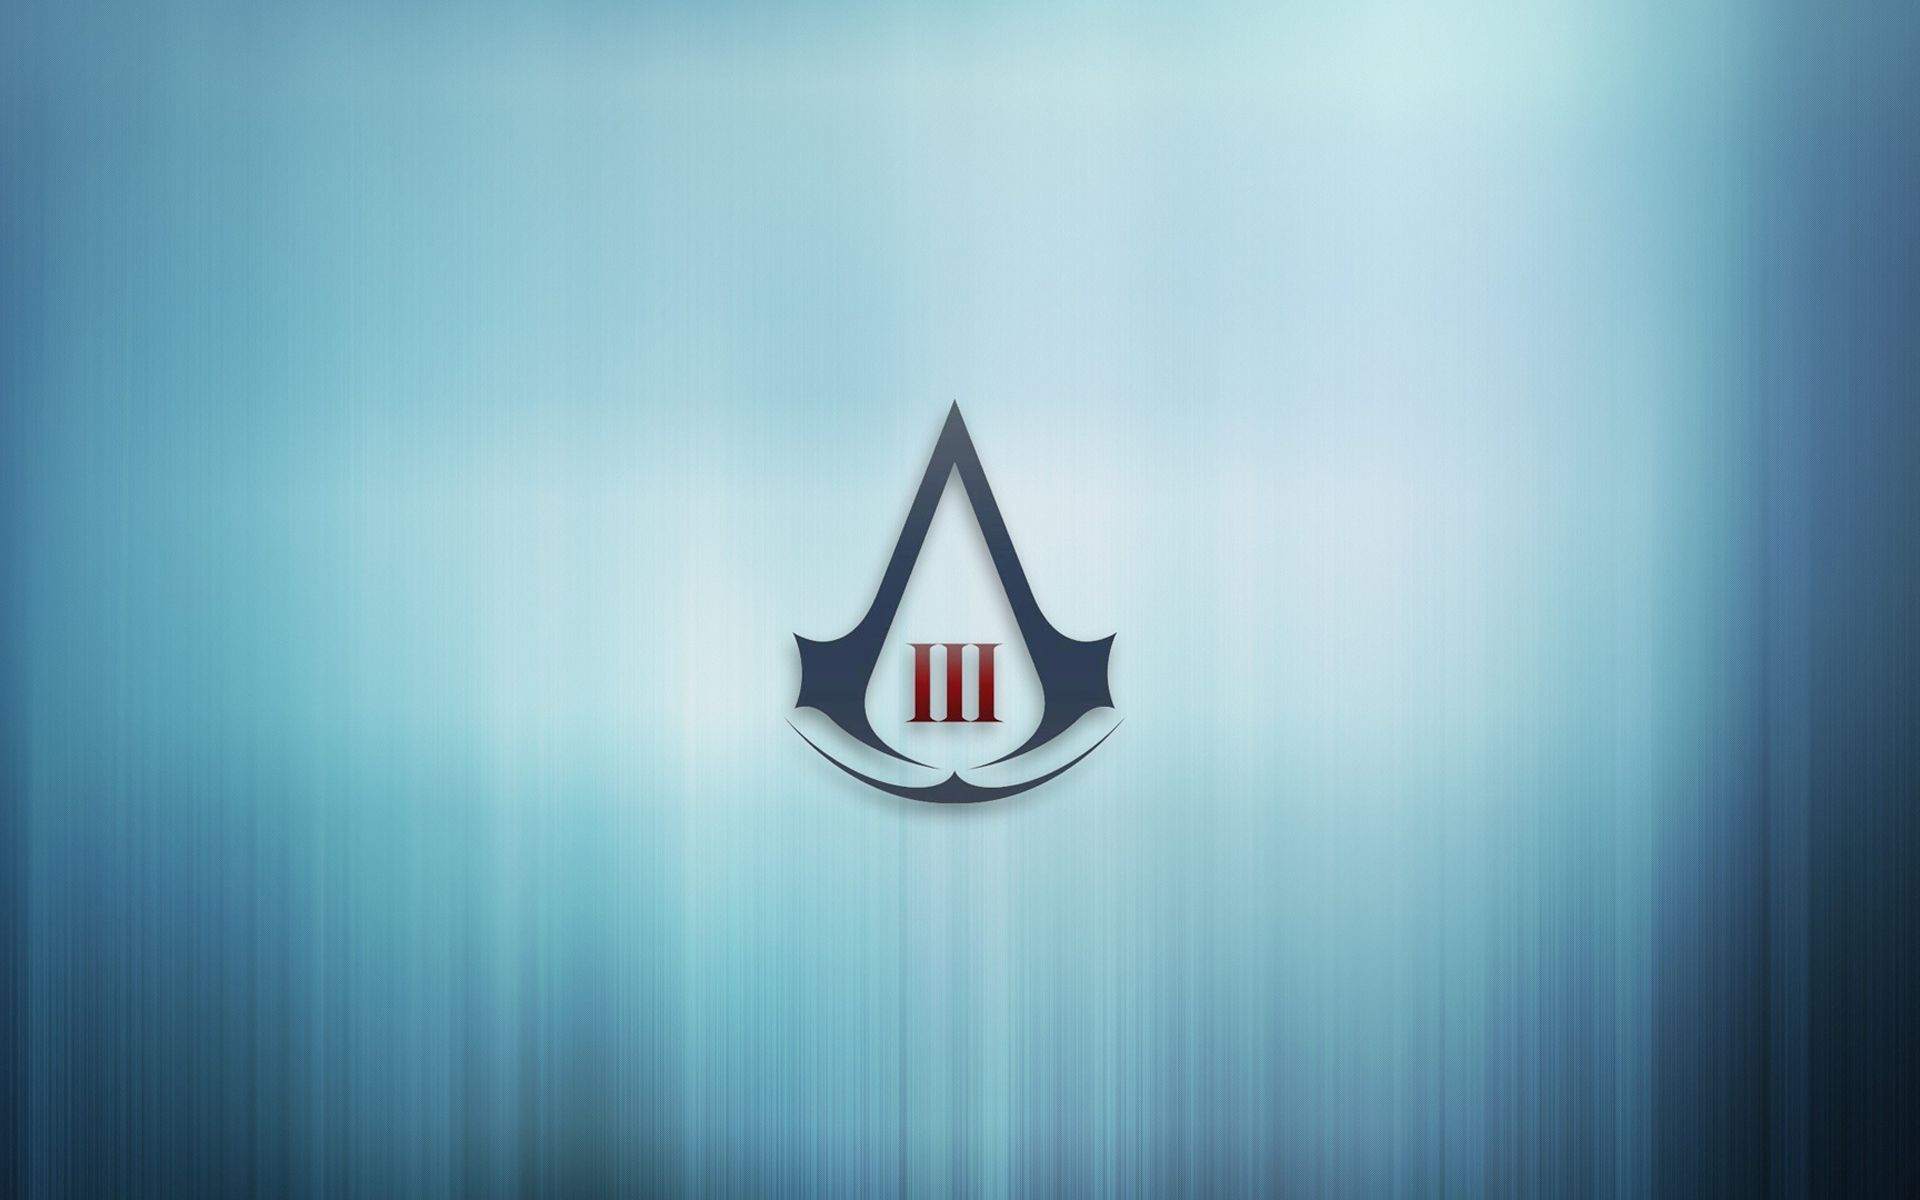 Assassins Creed Logo Wallpaper #6874086